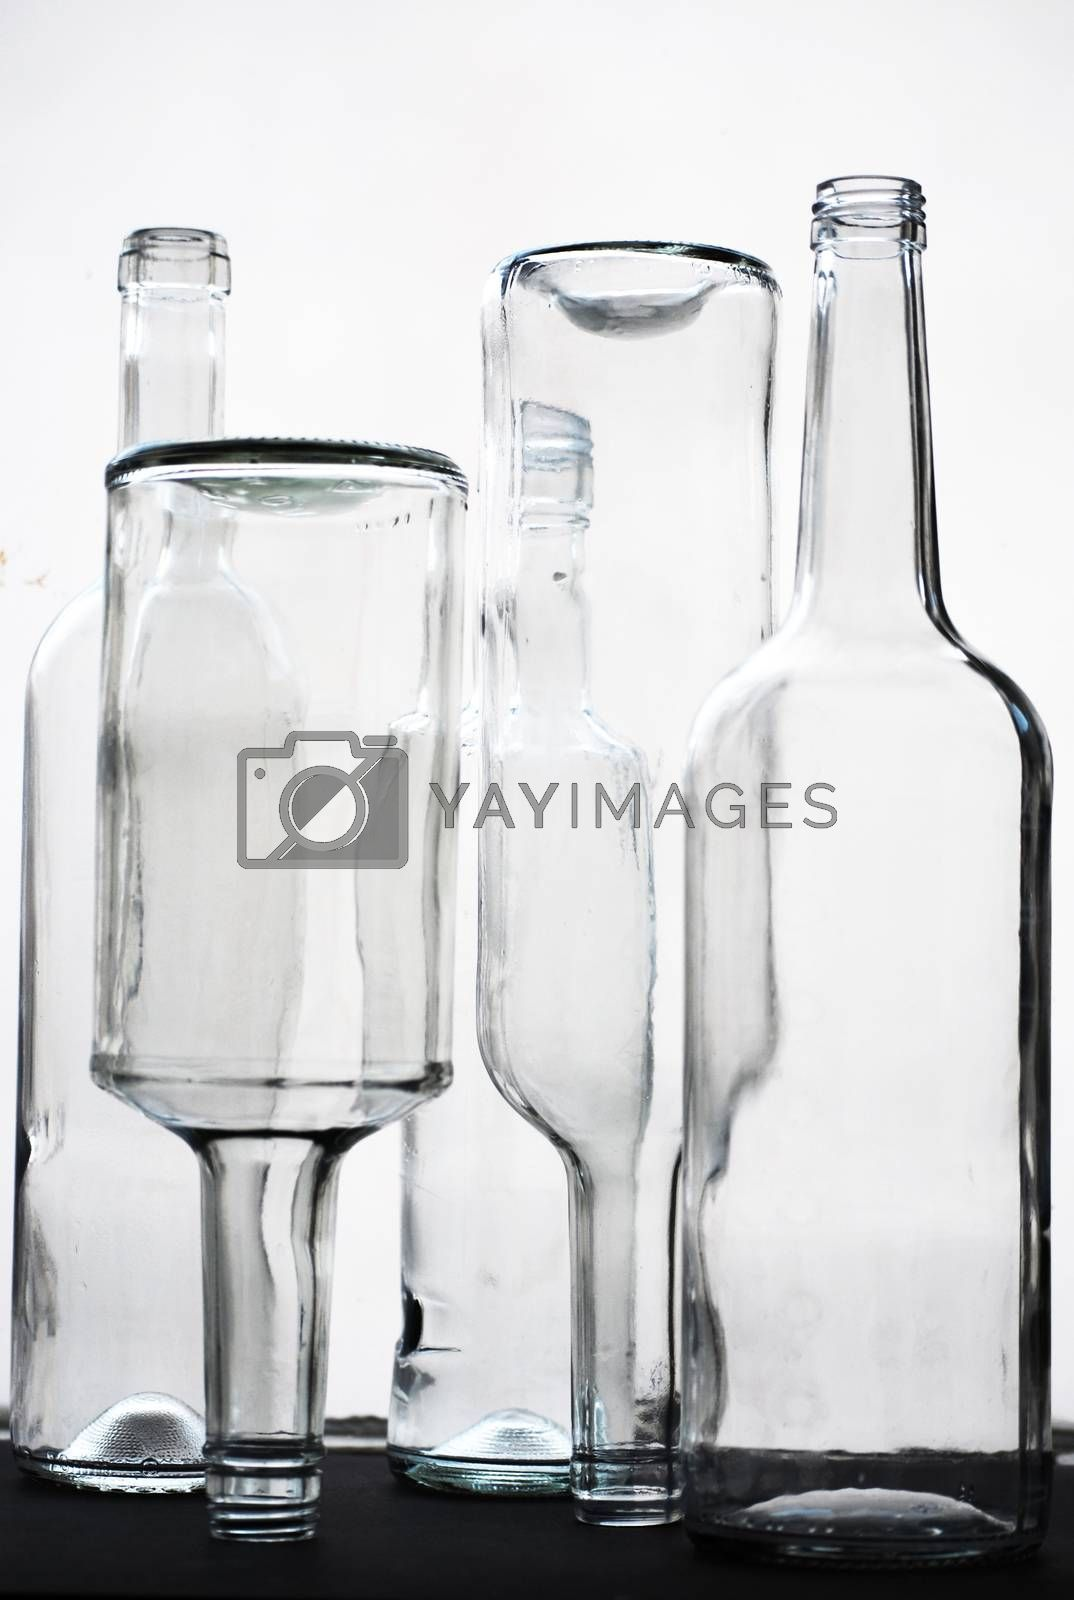 glass bottles by sarkao